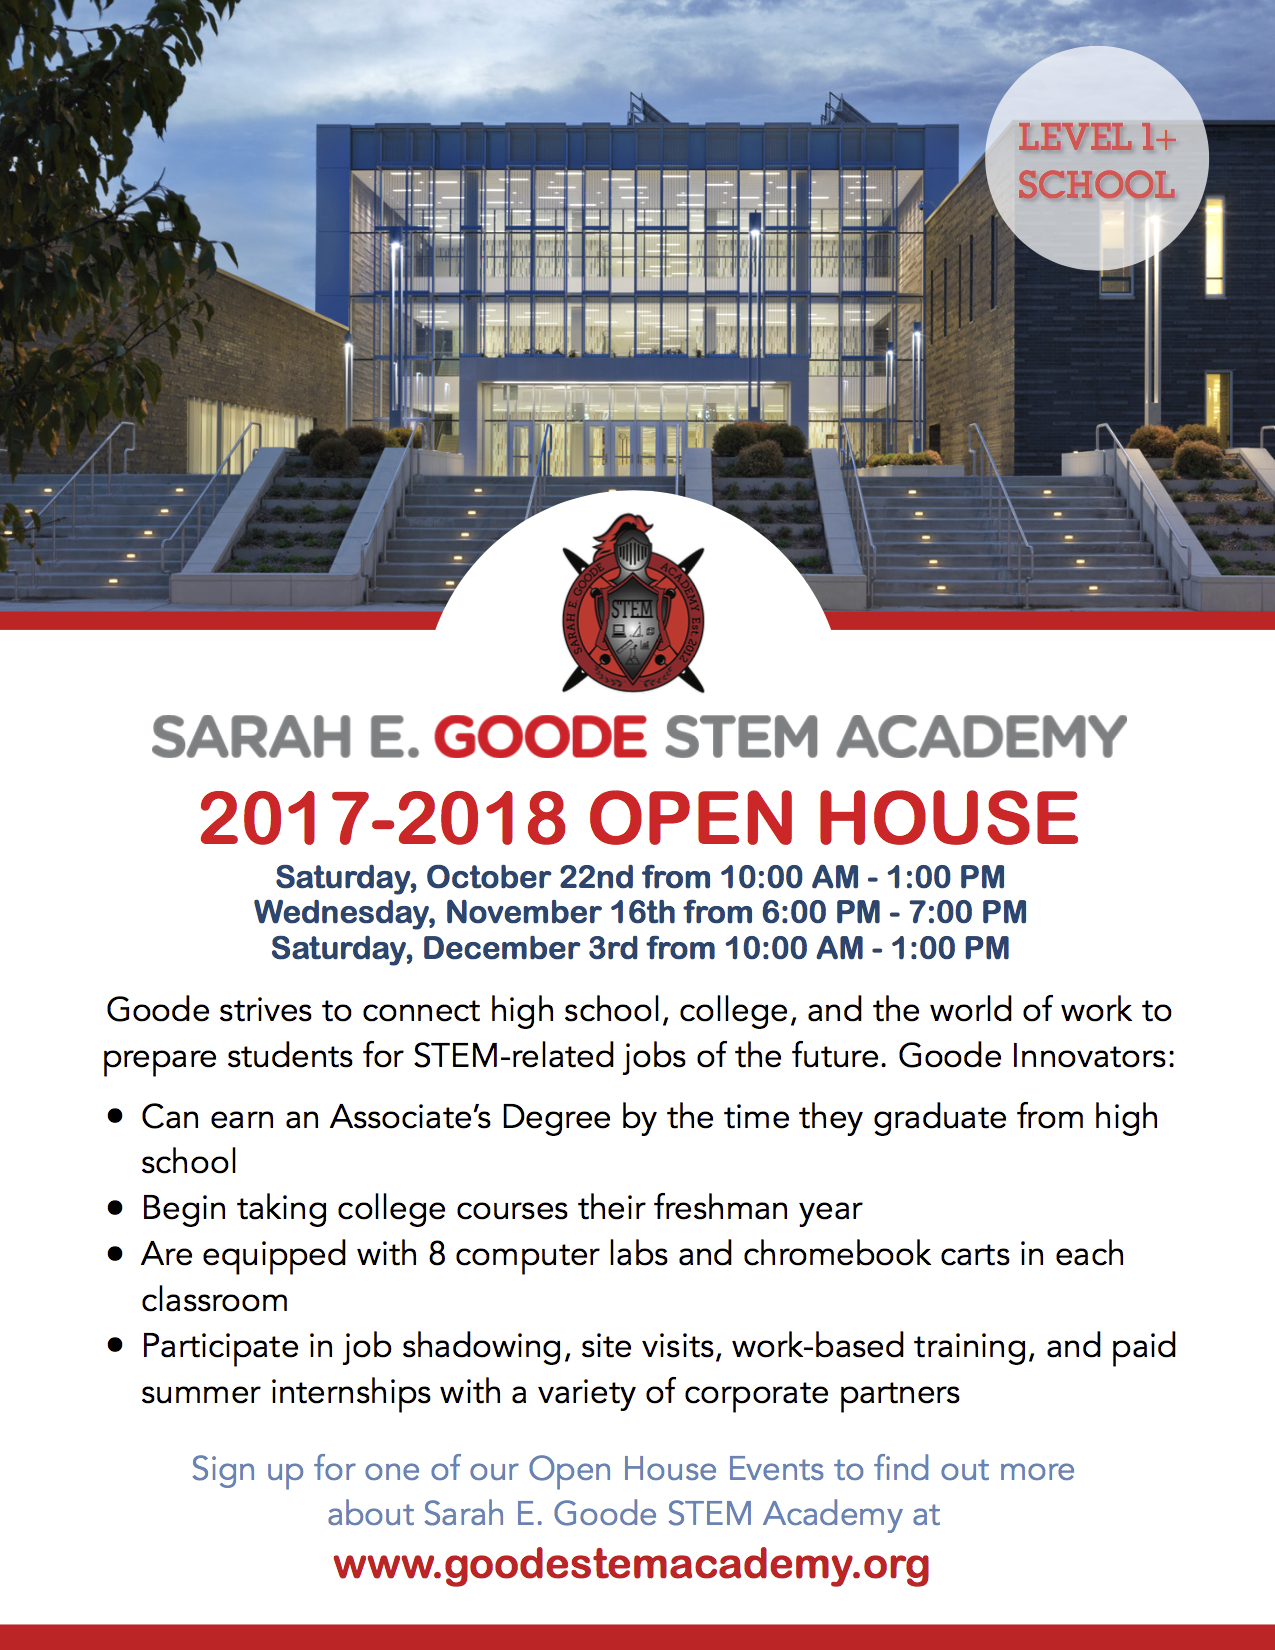 Goode Open House on Saturday, October 22nd